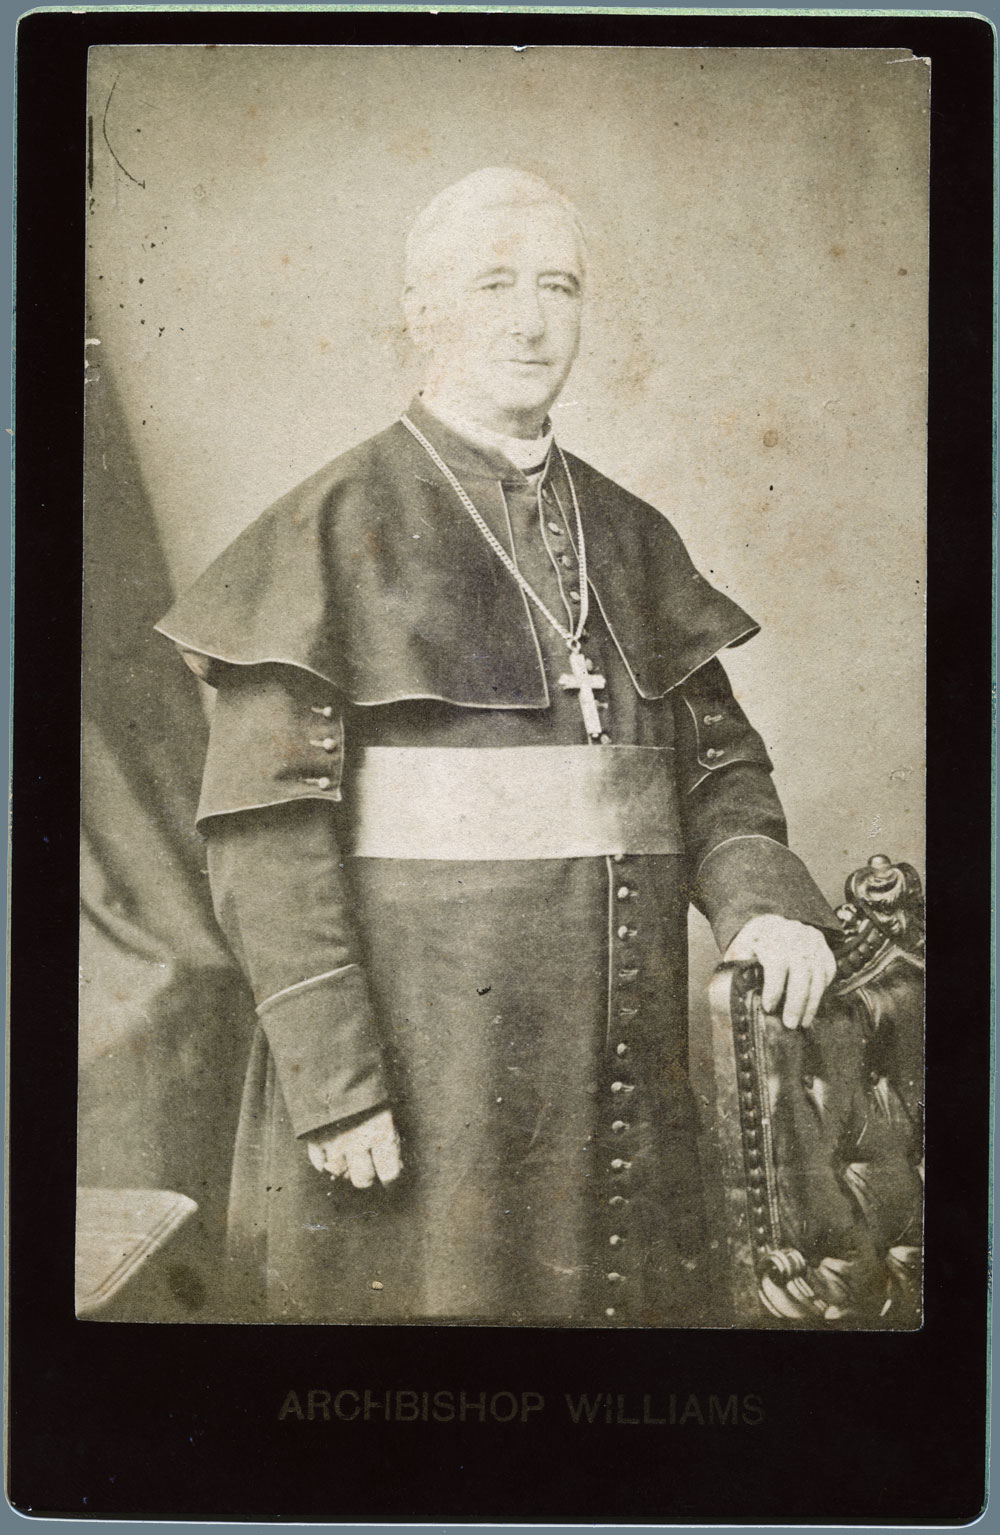 Archbishop Williams